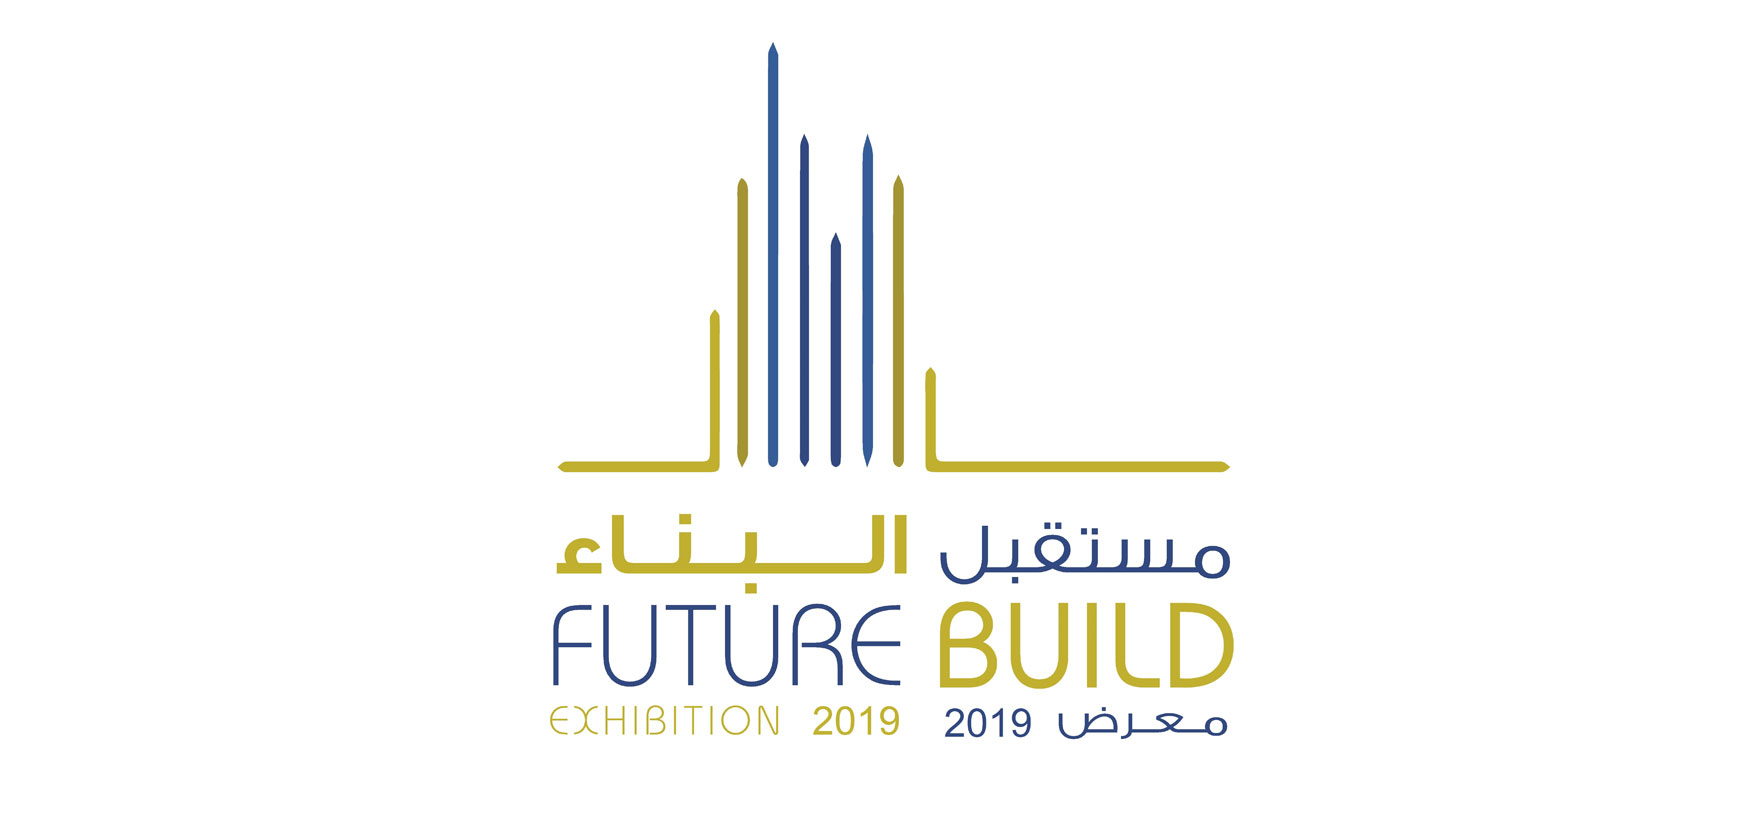 future-build-exhibition-2019-icon